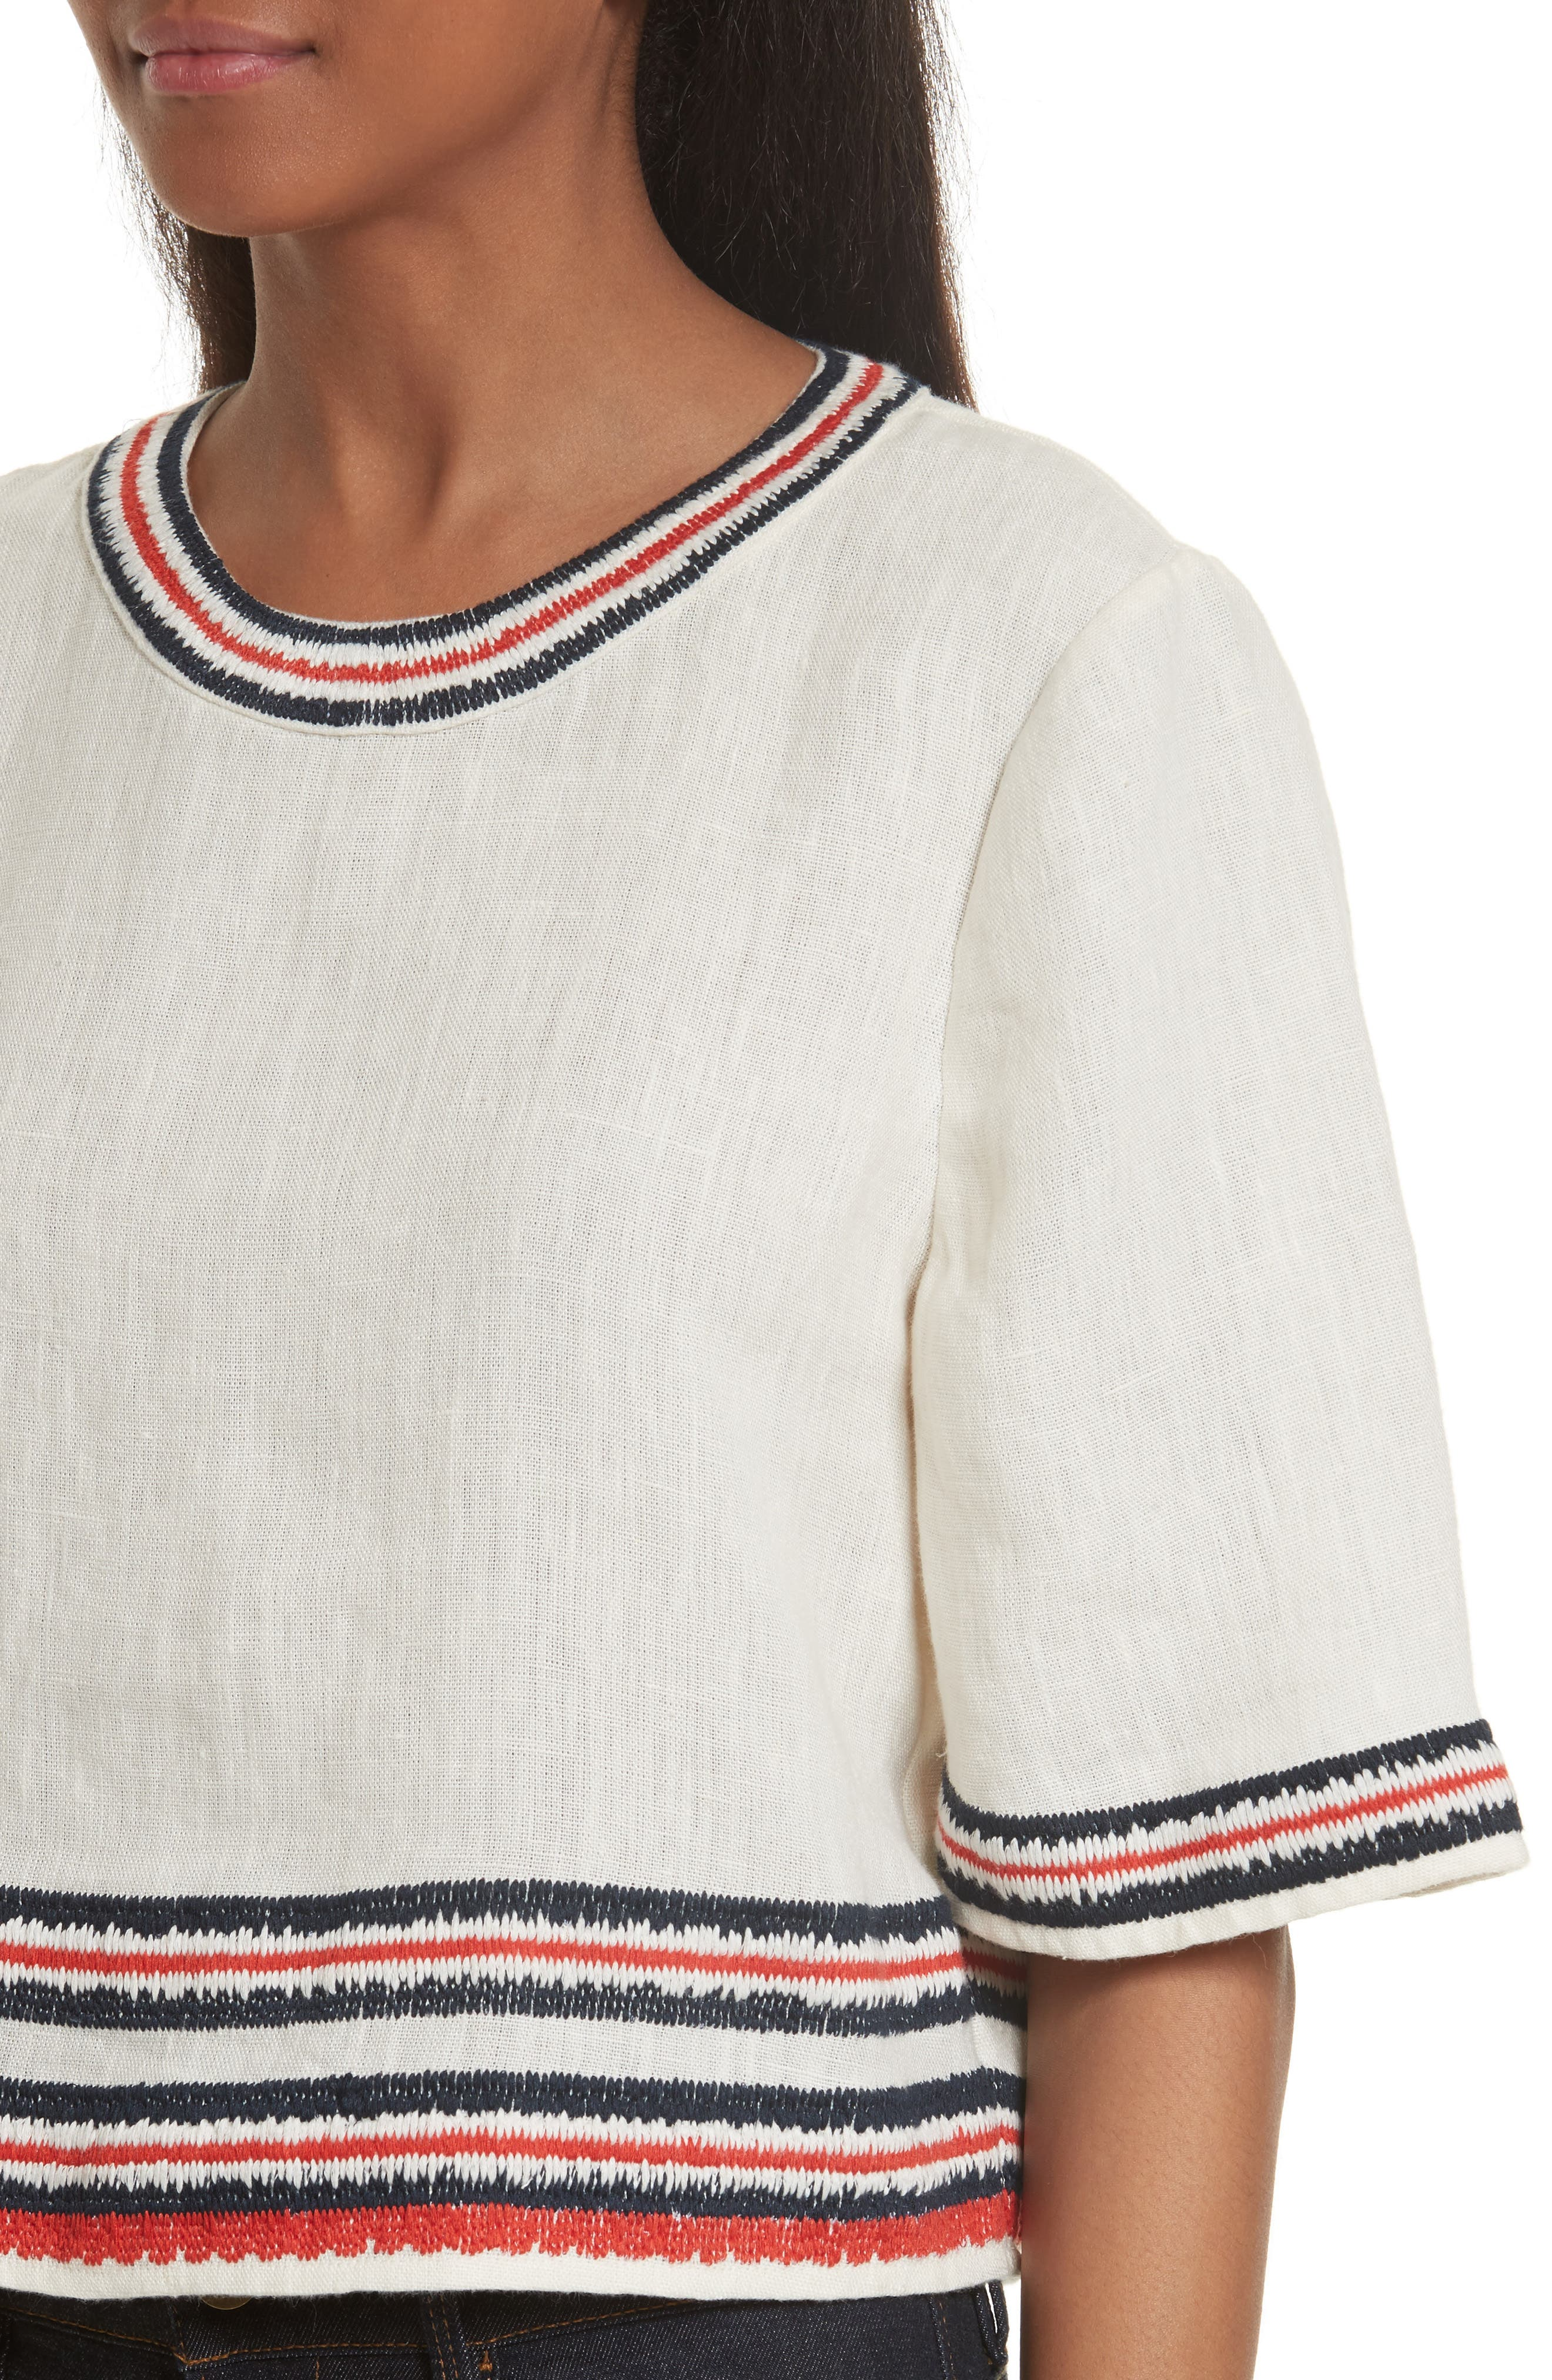 Florentina Embroidered Linen Top,                             Alternate thumbnail 4, color,                             104